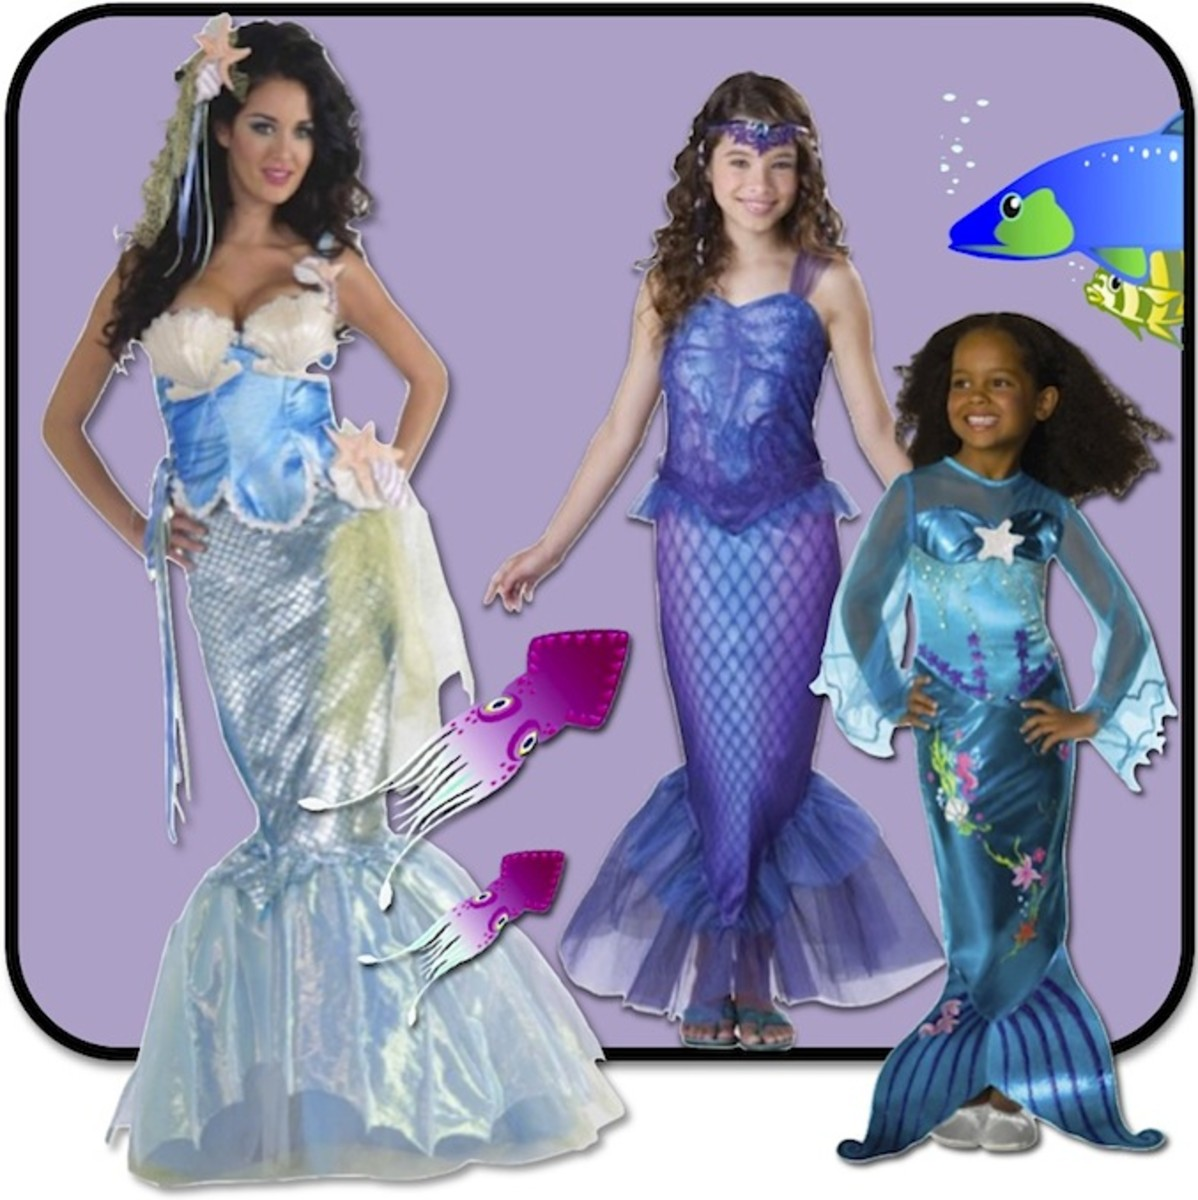 The Best Mermaid Costumes for Halloween or Cosplay